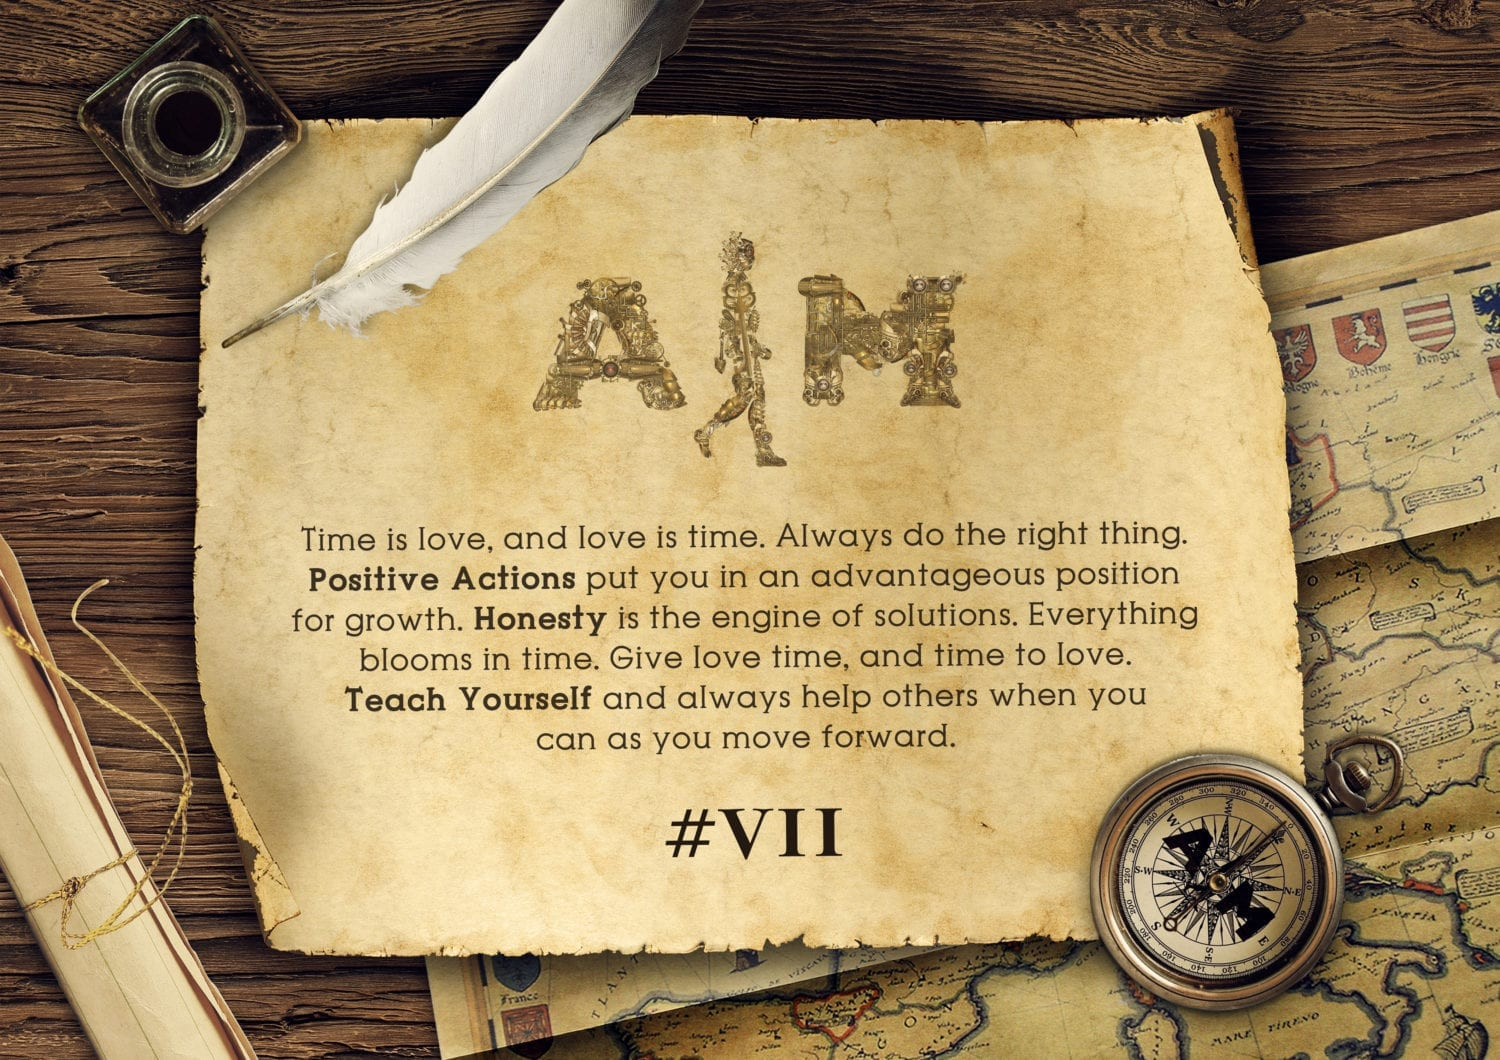 Aim attitude key elements image version II #7